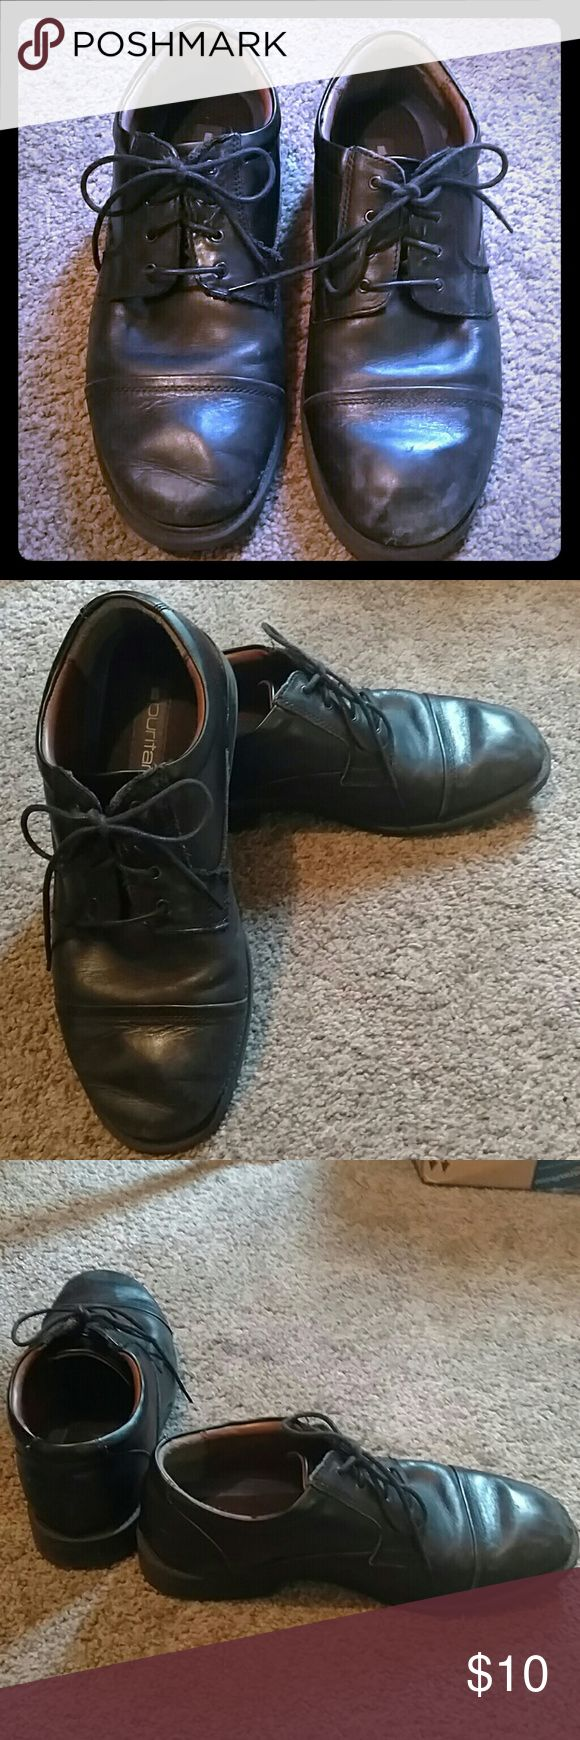 Puritan Men's Shoes Size 13 Men's black tie up Puritan shoes. Lightly used in very good condition. No wear on the soles. Great for comfort and casual wear. Puritan Shoes Loafers & Slip-Ons